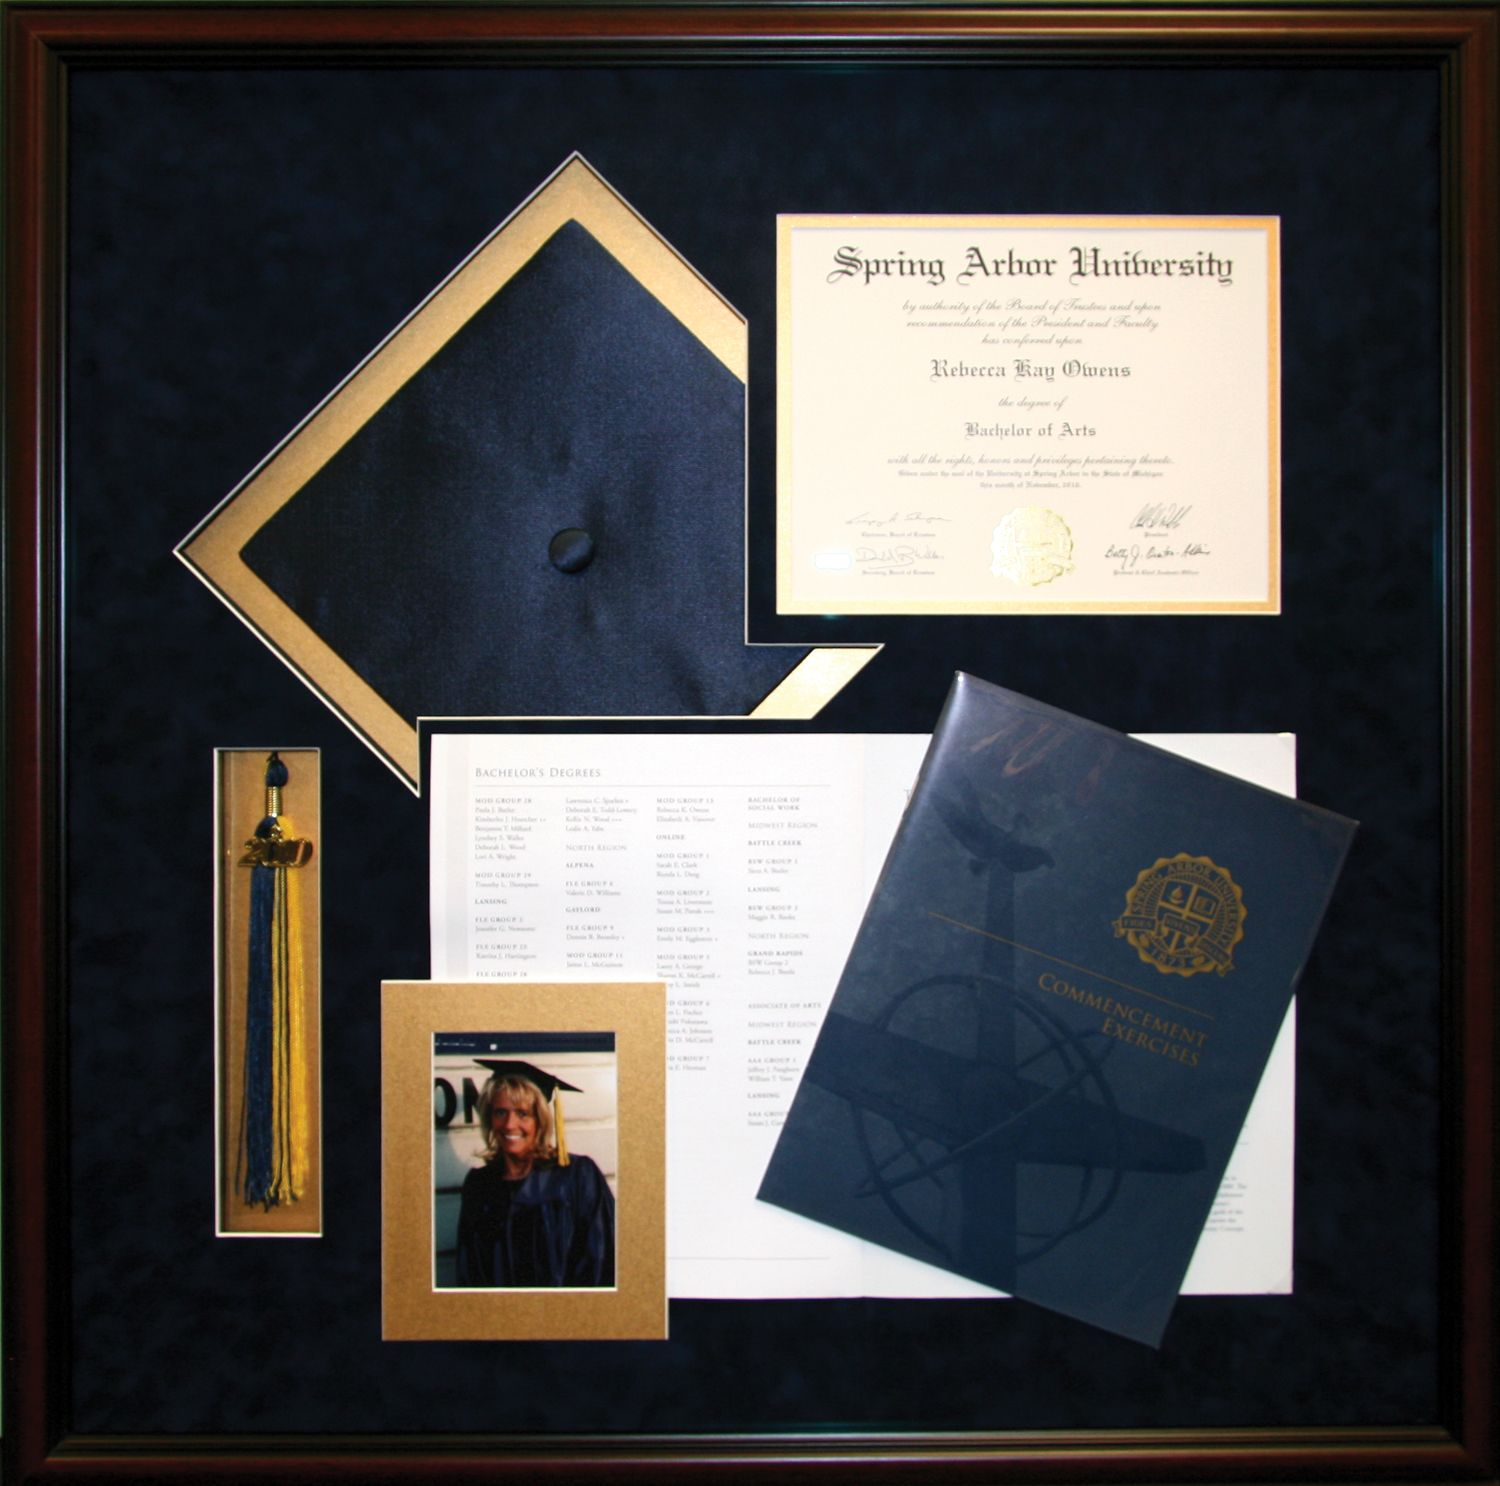 A really cool composition of graduation memorabilia brought together ...